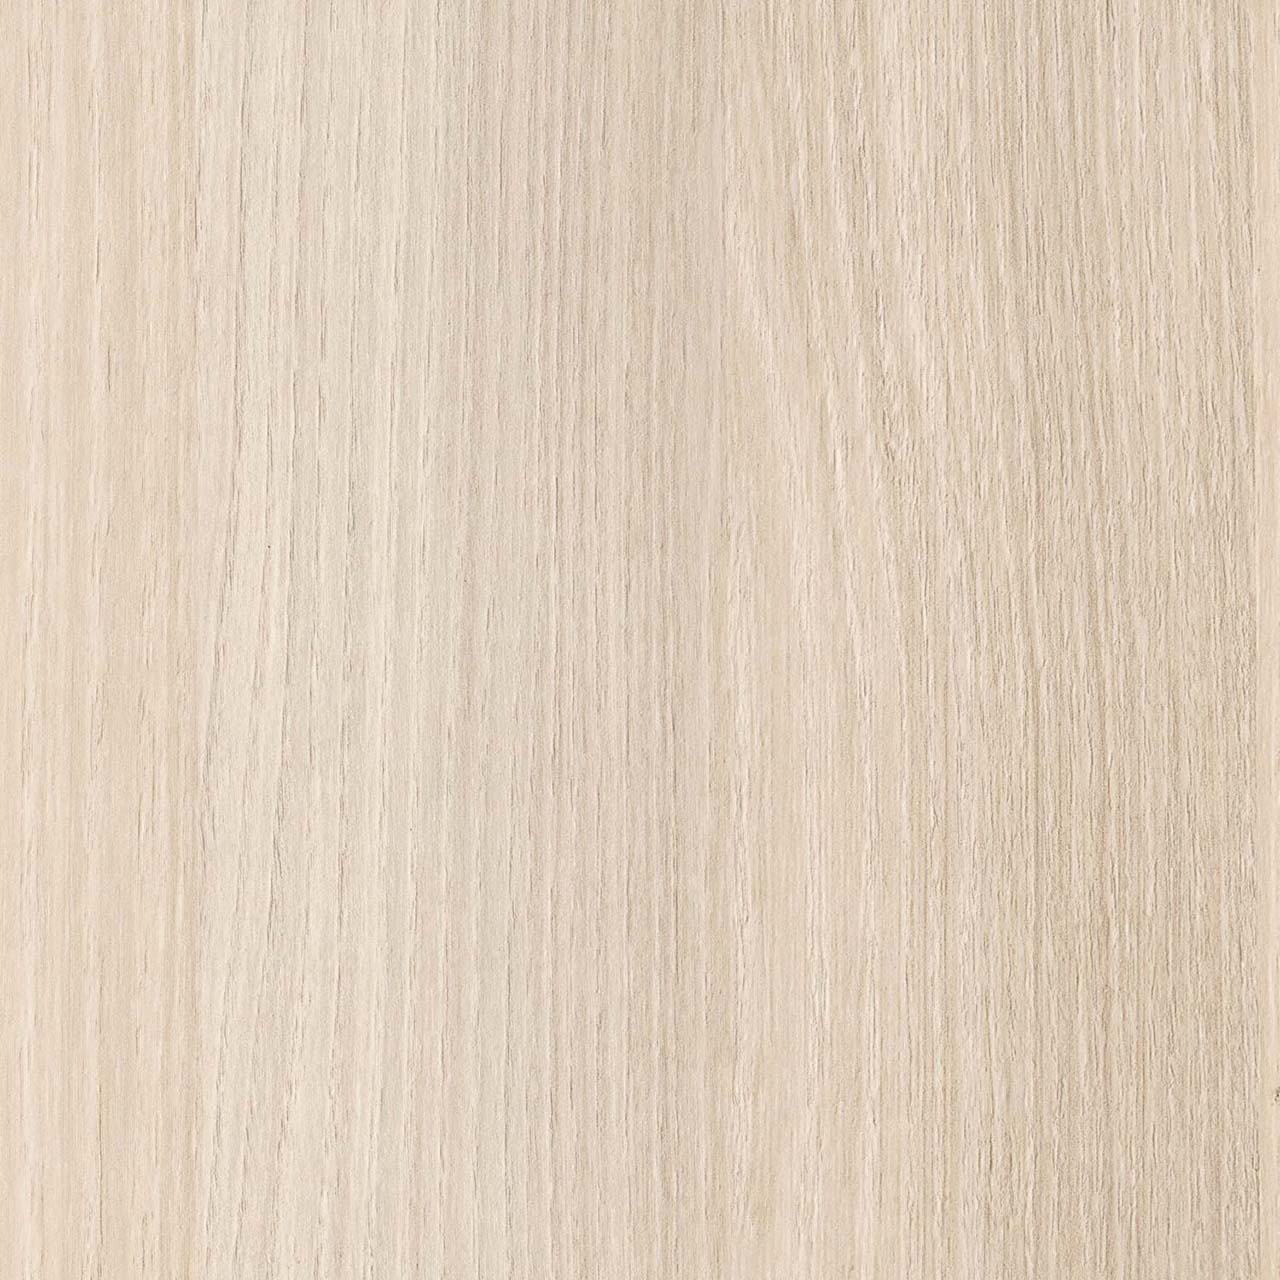 Moldau Oak effect laminate panel